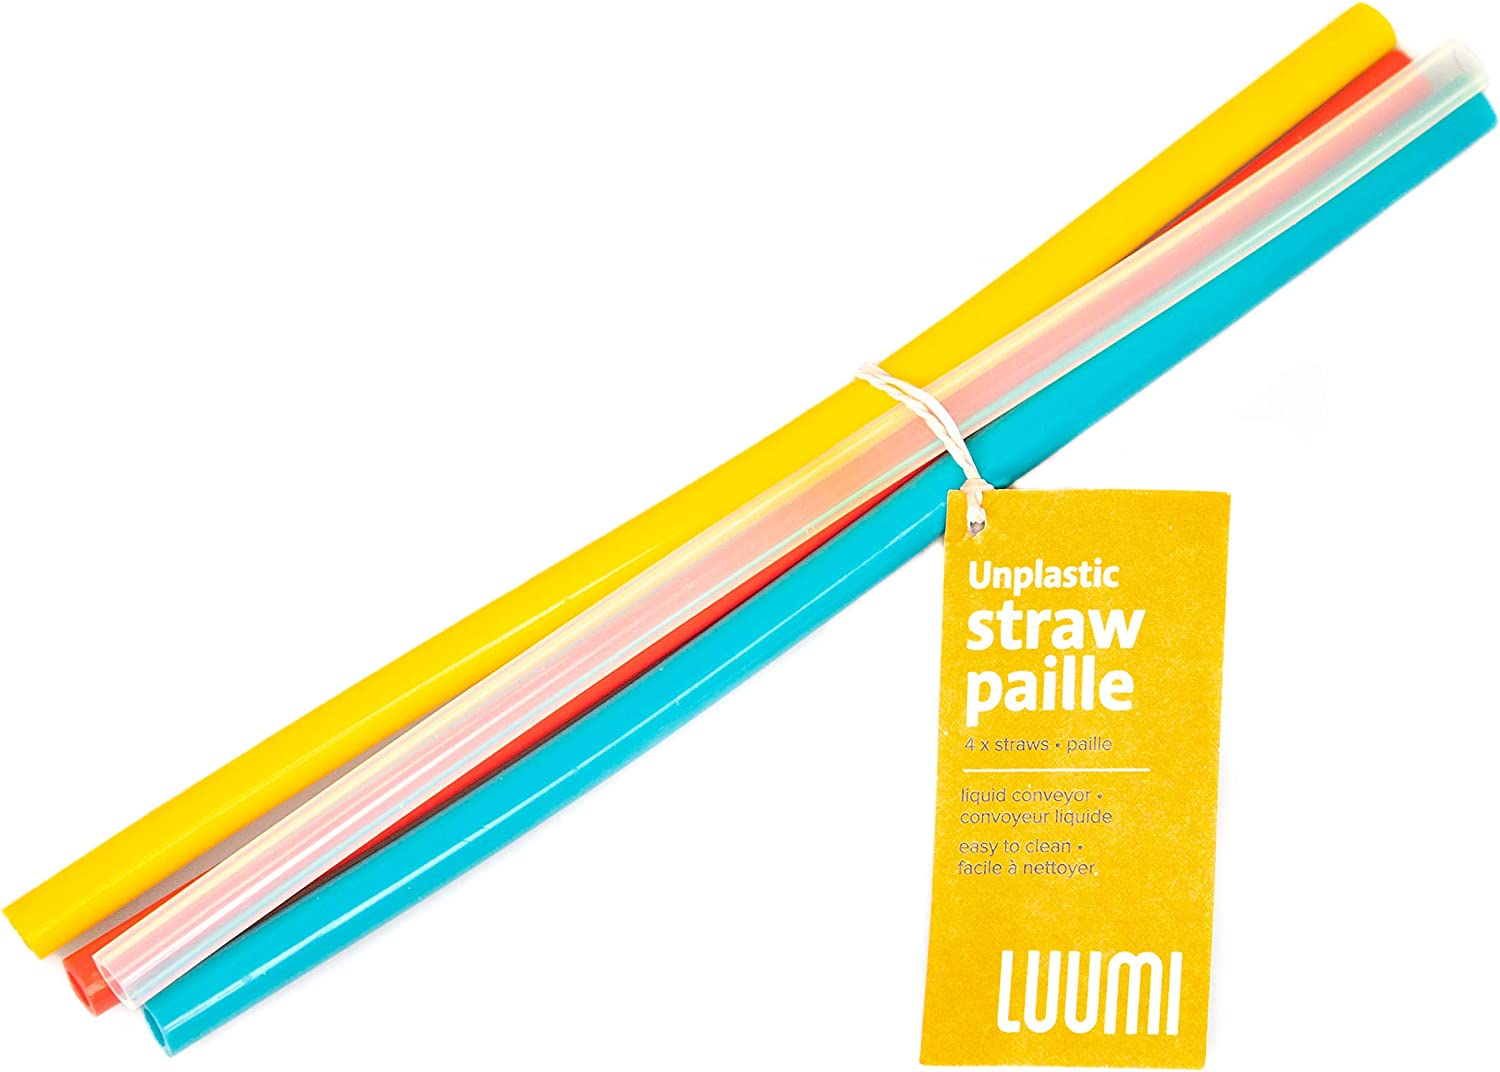 Luumi Unplastic Reusable Silicone Straws –100% Pure Platinum Silicone Straws for Drinking – BPA Free, Durable, Flexible, Dishwasher Safe and Kids/Toddlers Friendly (Assorted Colors)